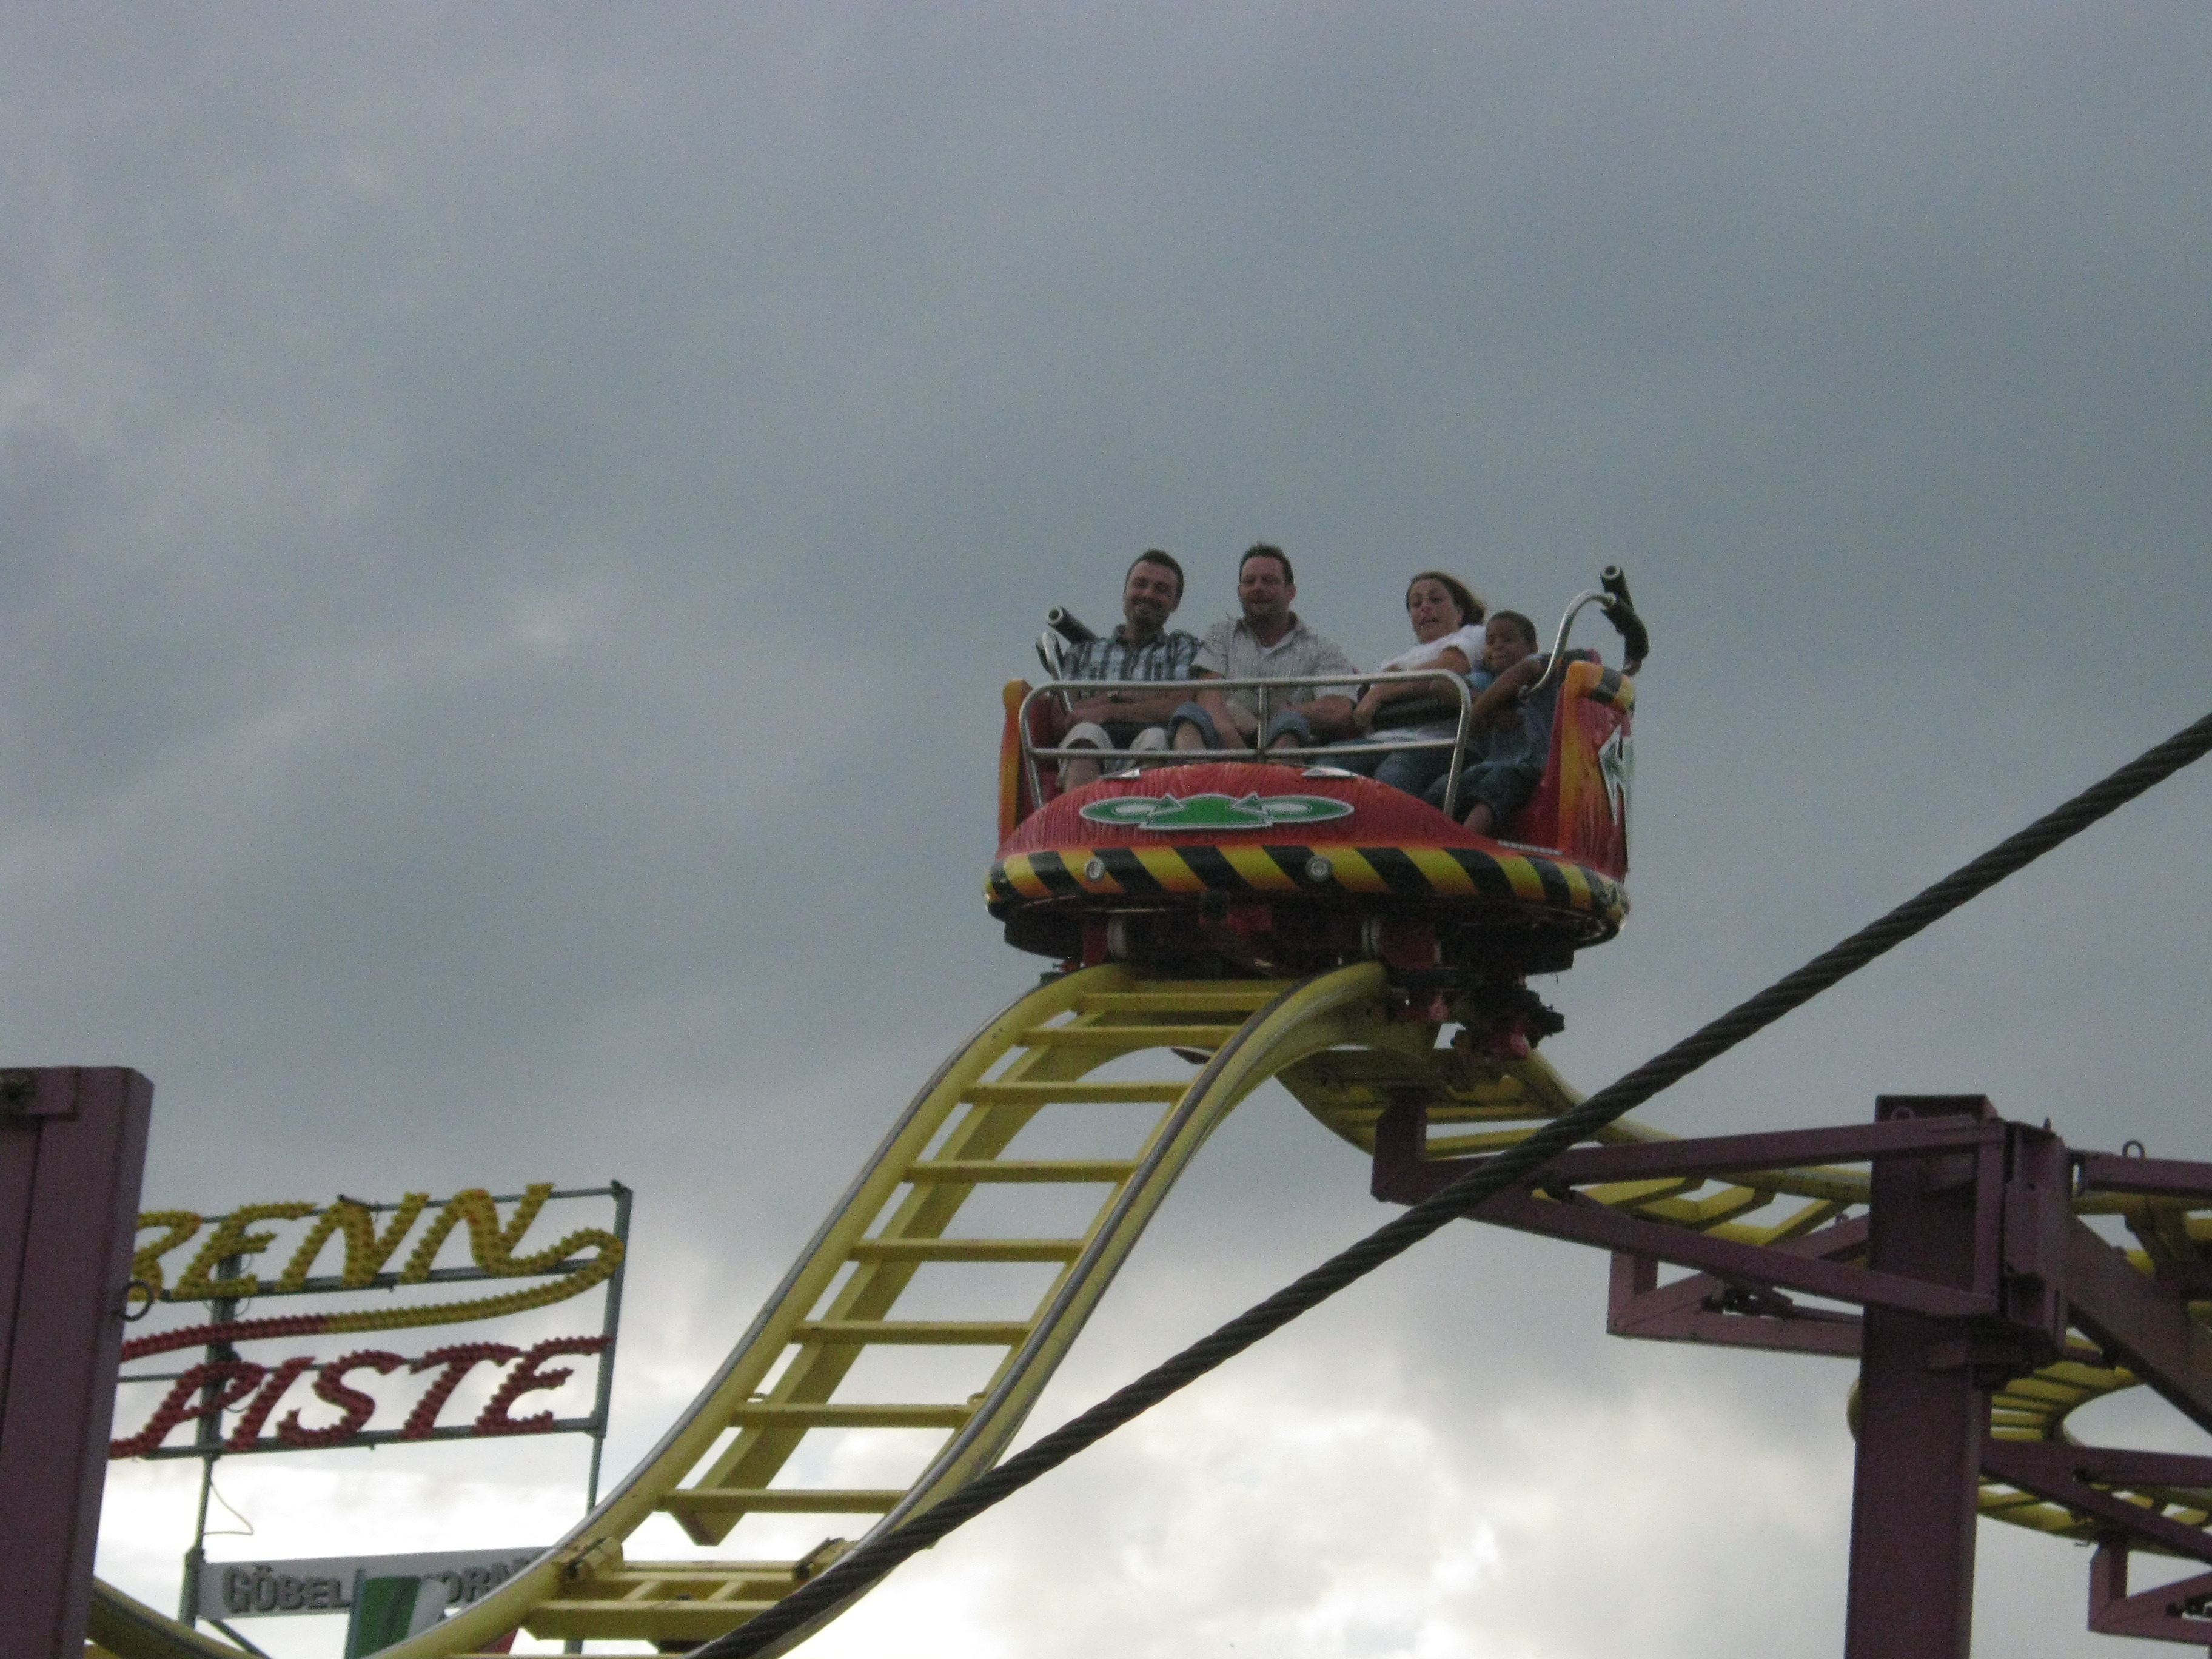 File:Supar Mouse Roller Coaster2.JPG - Wikimedia Commons